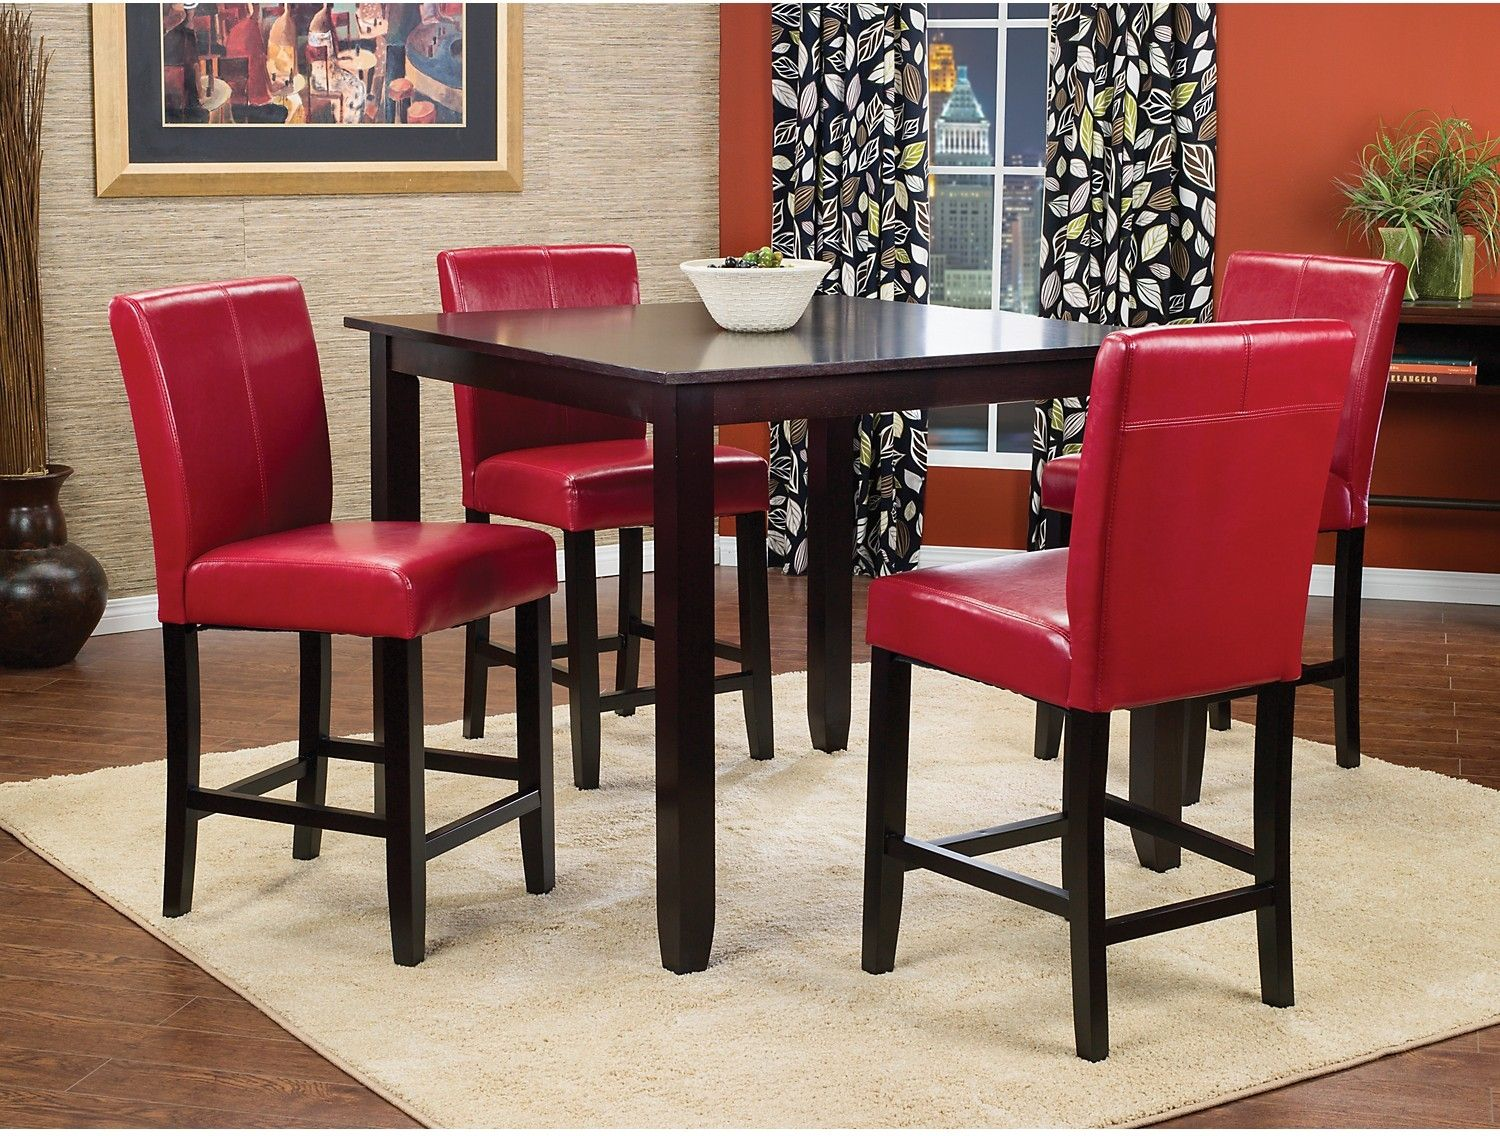 Nicole 5 Piece Counter Height Dining Package with Red Chairs   The BrickNicole 5 Piece Counter Height Dining Package with Red Chairs   The  . Red Dining Chairs And Table. Home Design Ideas